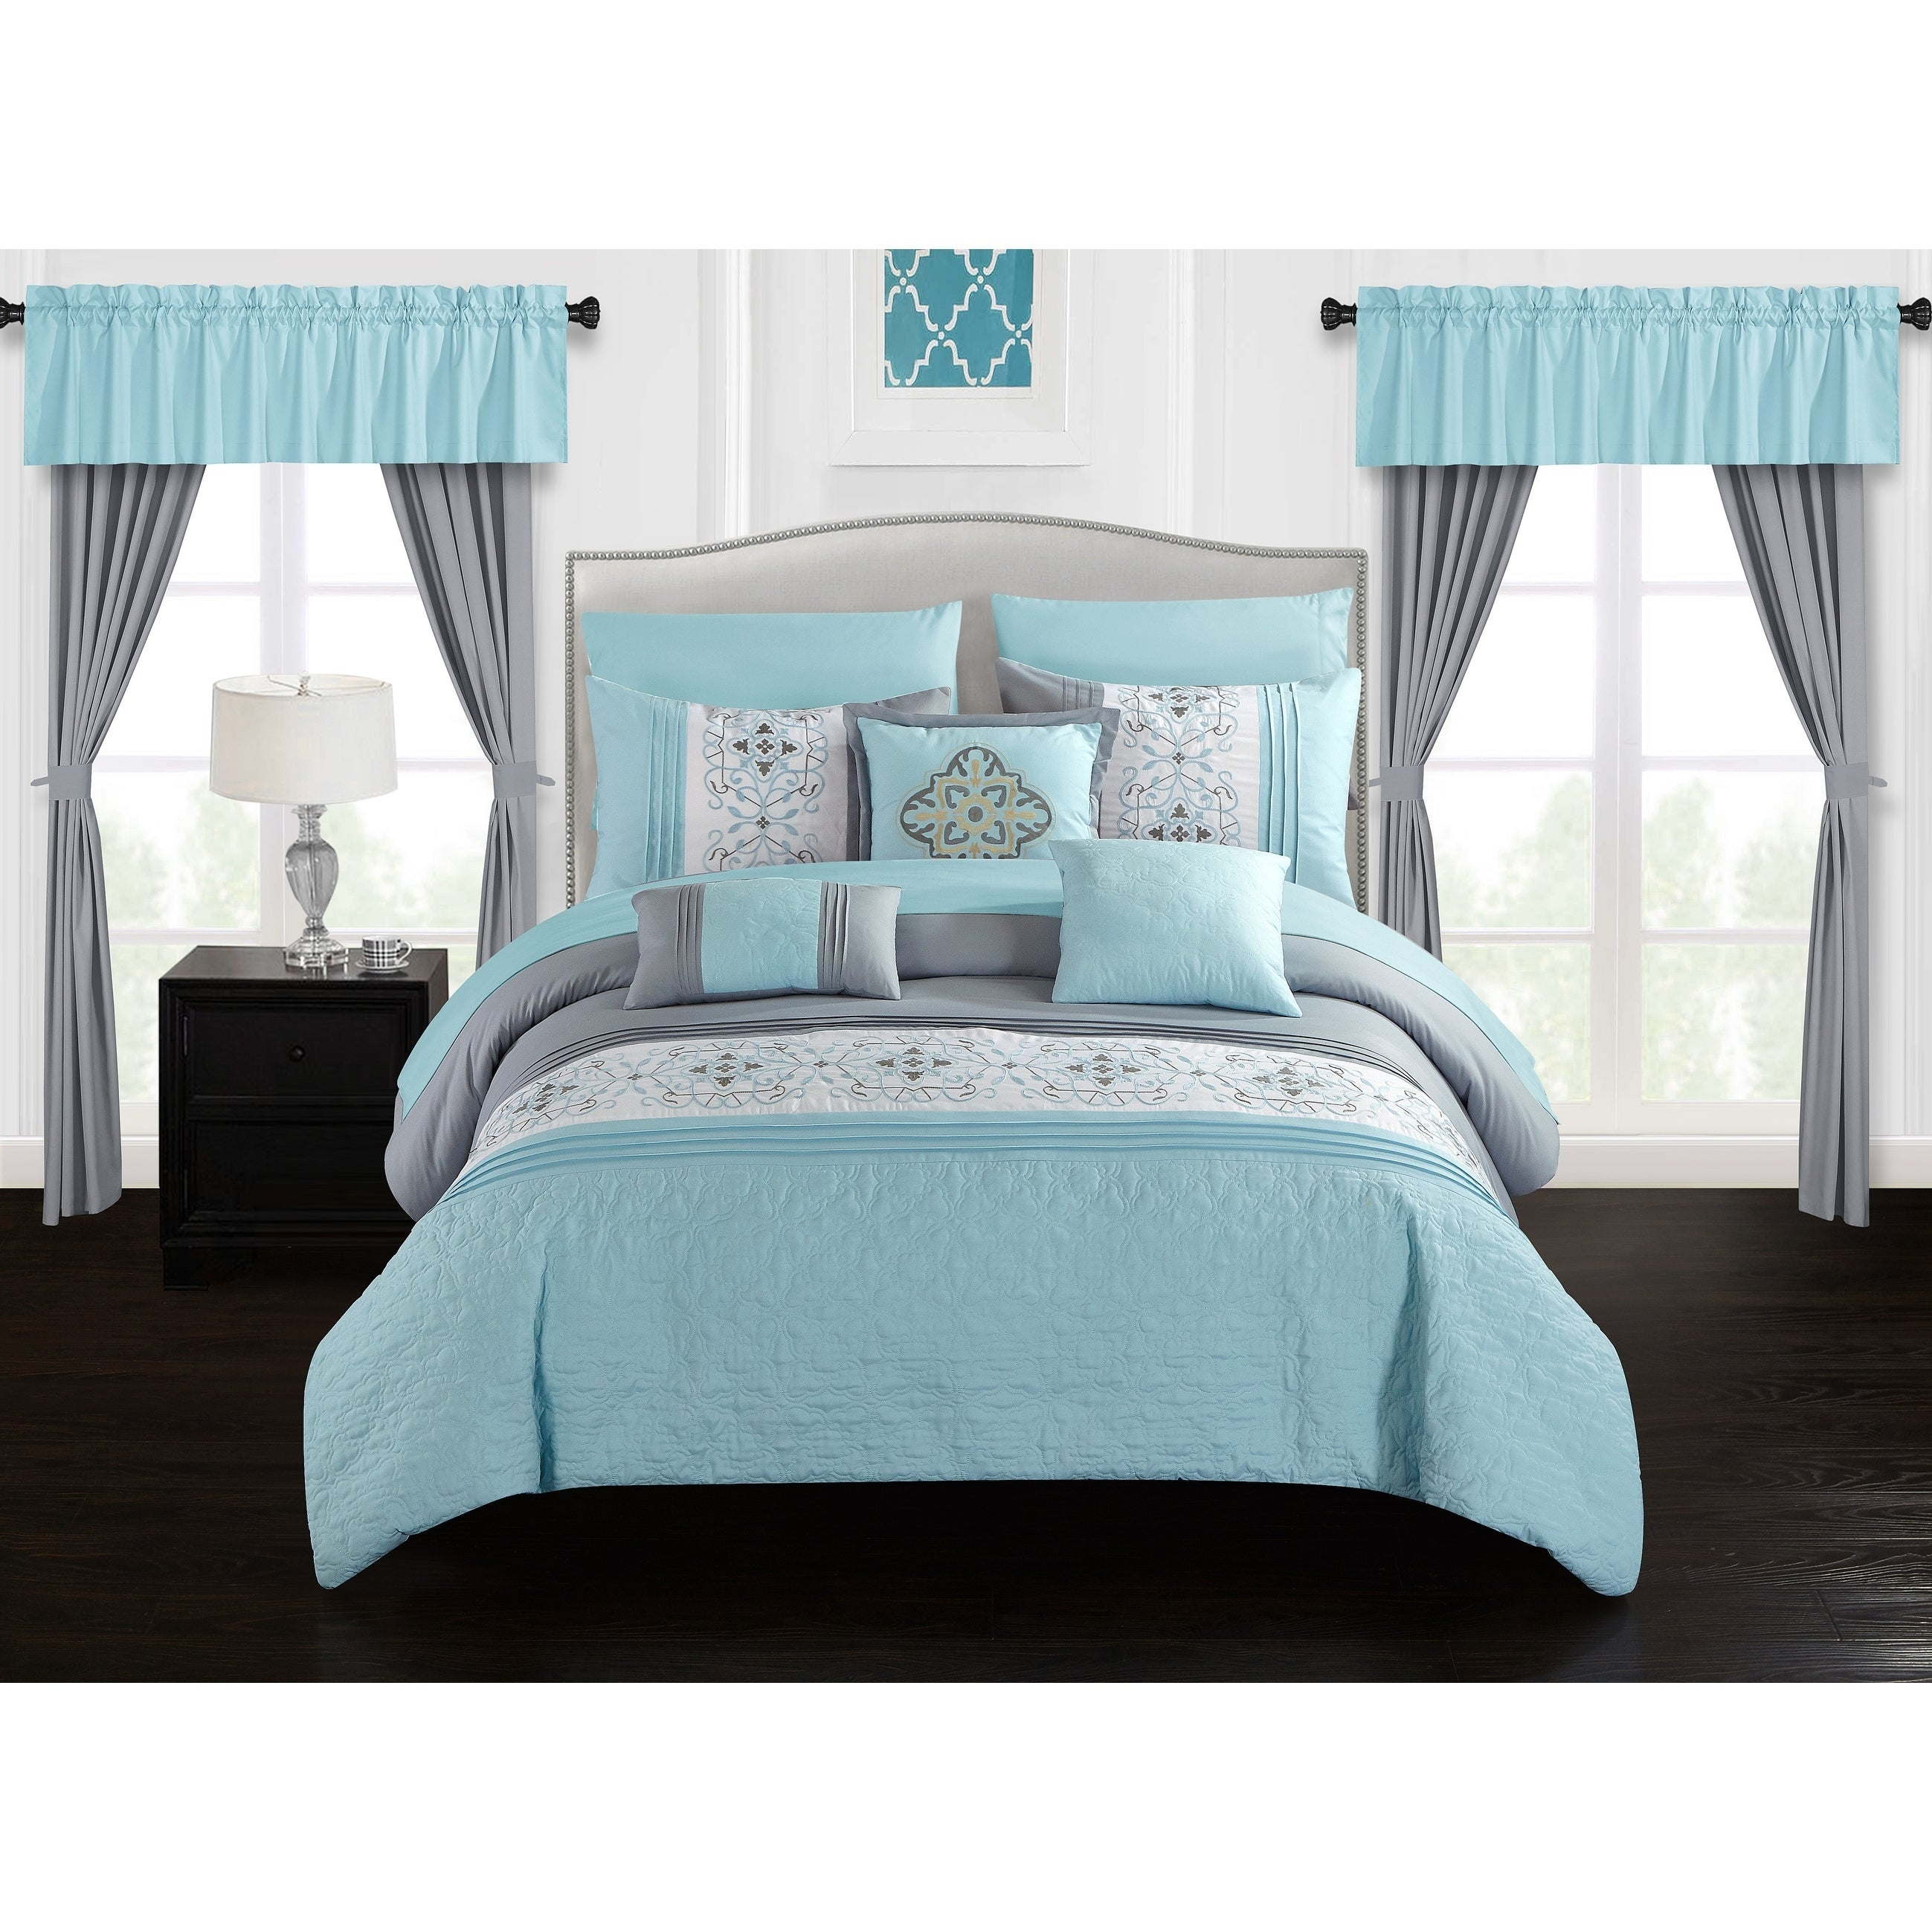 fascinating ivory color teal lodge sets king comforter ecrins set